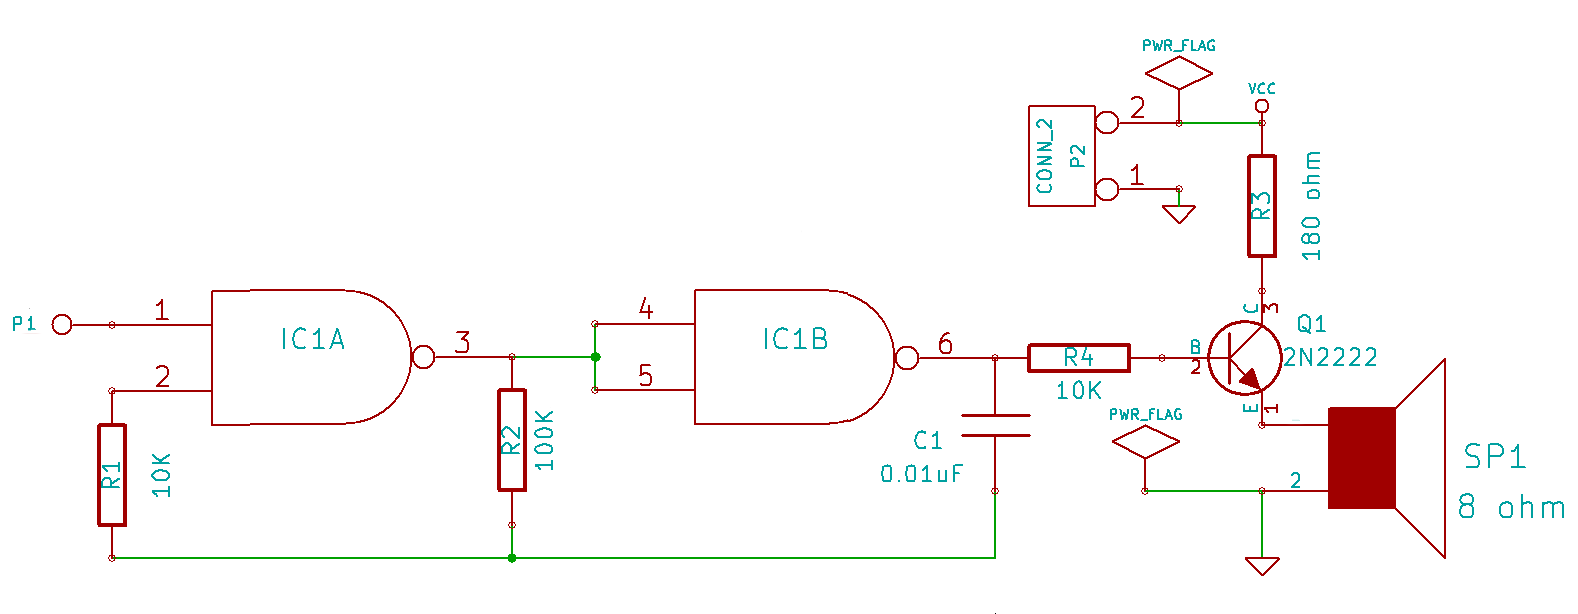 Sk1qn1 Devices With Multiple Gates Kicadhowto Circuit Diagram Using Logic Final Schematic